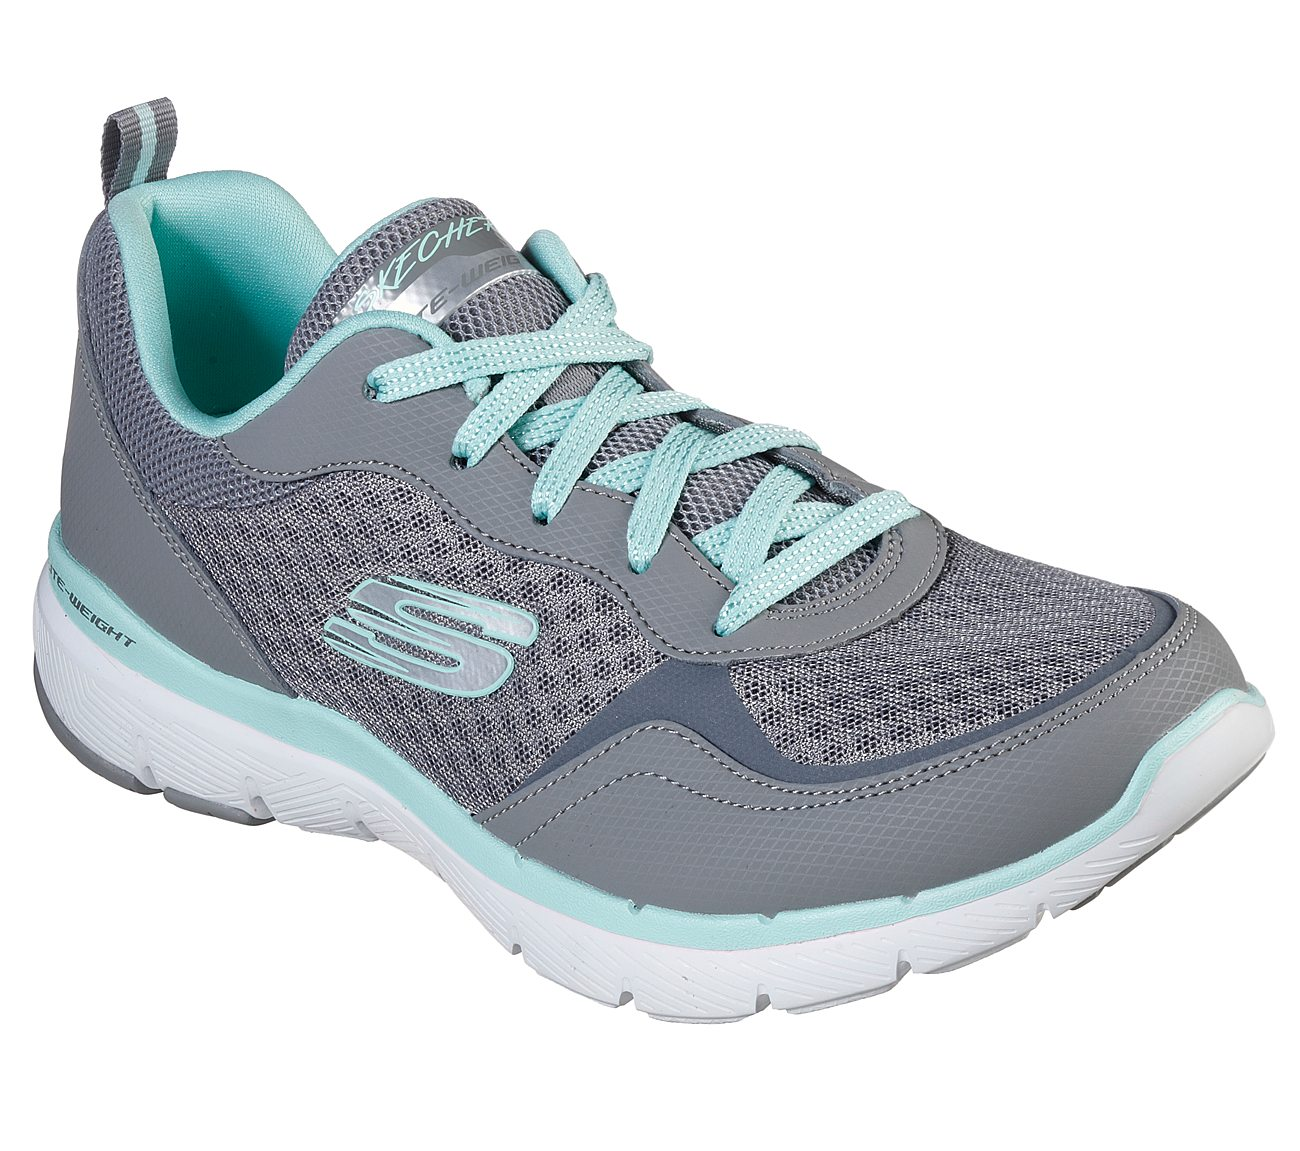 3138bd68299 Buy SKECHERS Flex Appeal 3.0 - Go Forward Flex Appeal Shoes only $60.00